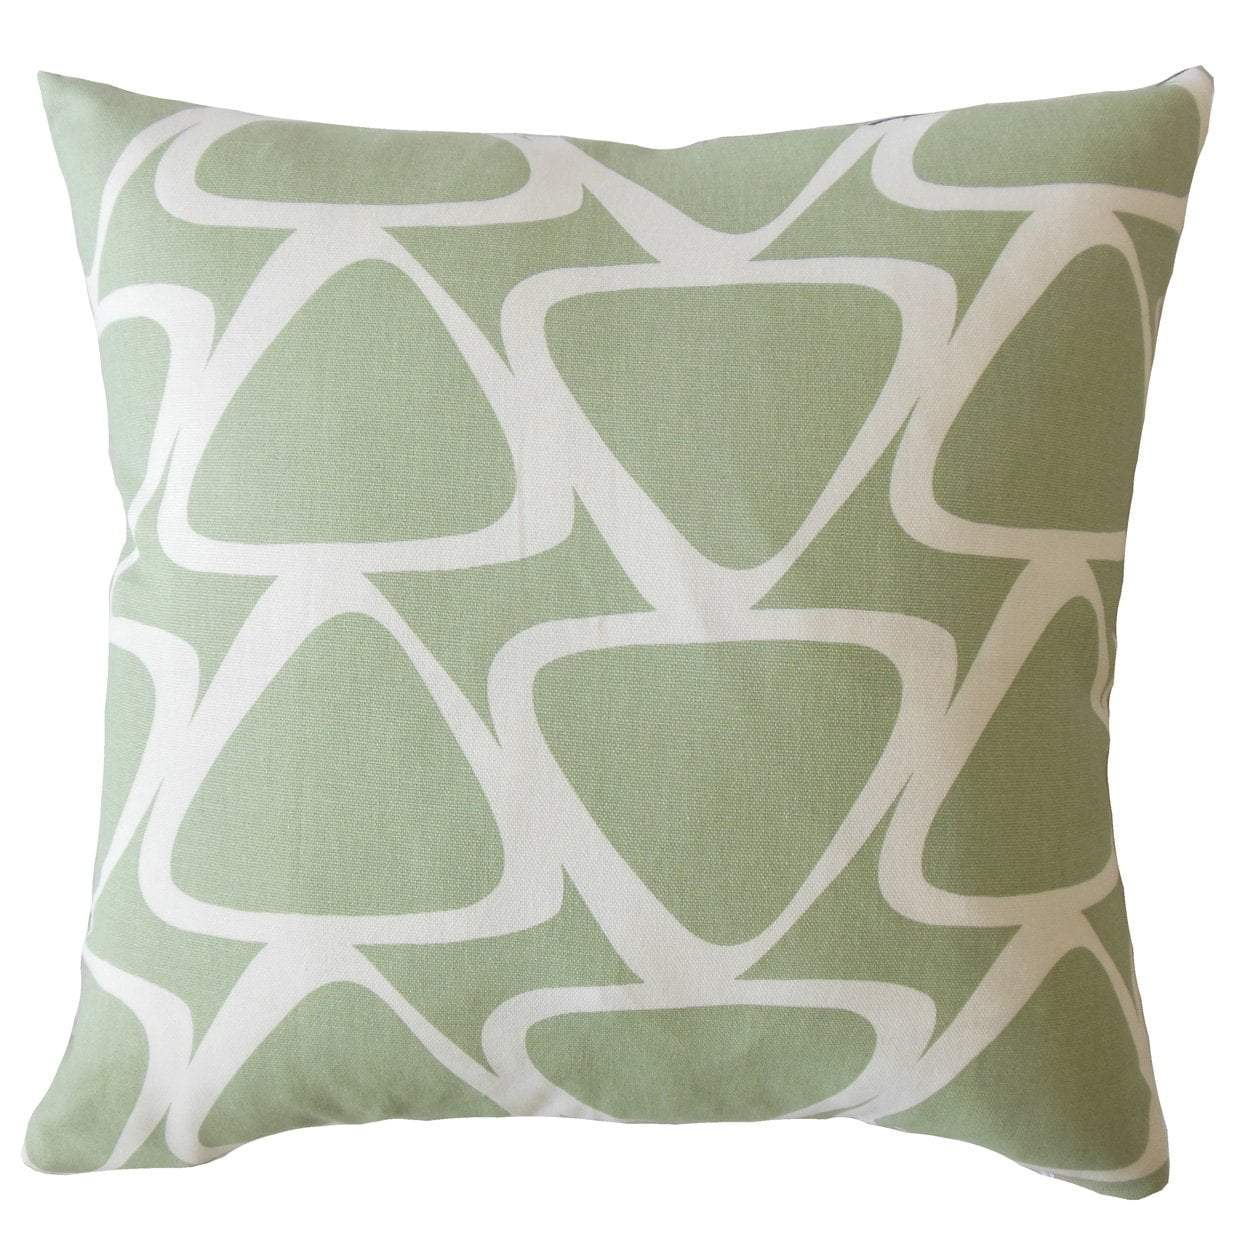 Green Cotton Geometric Contemporary Throw Pillow Cover